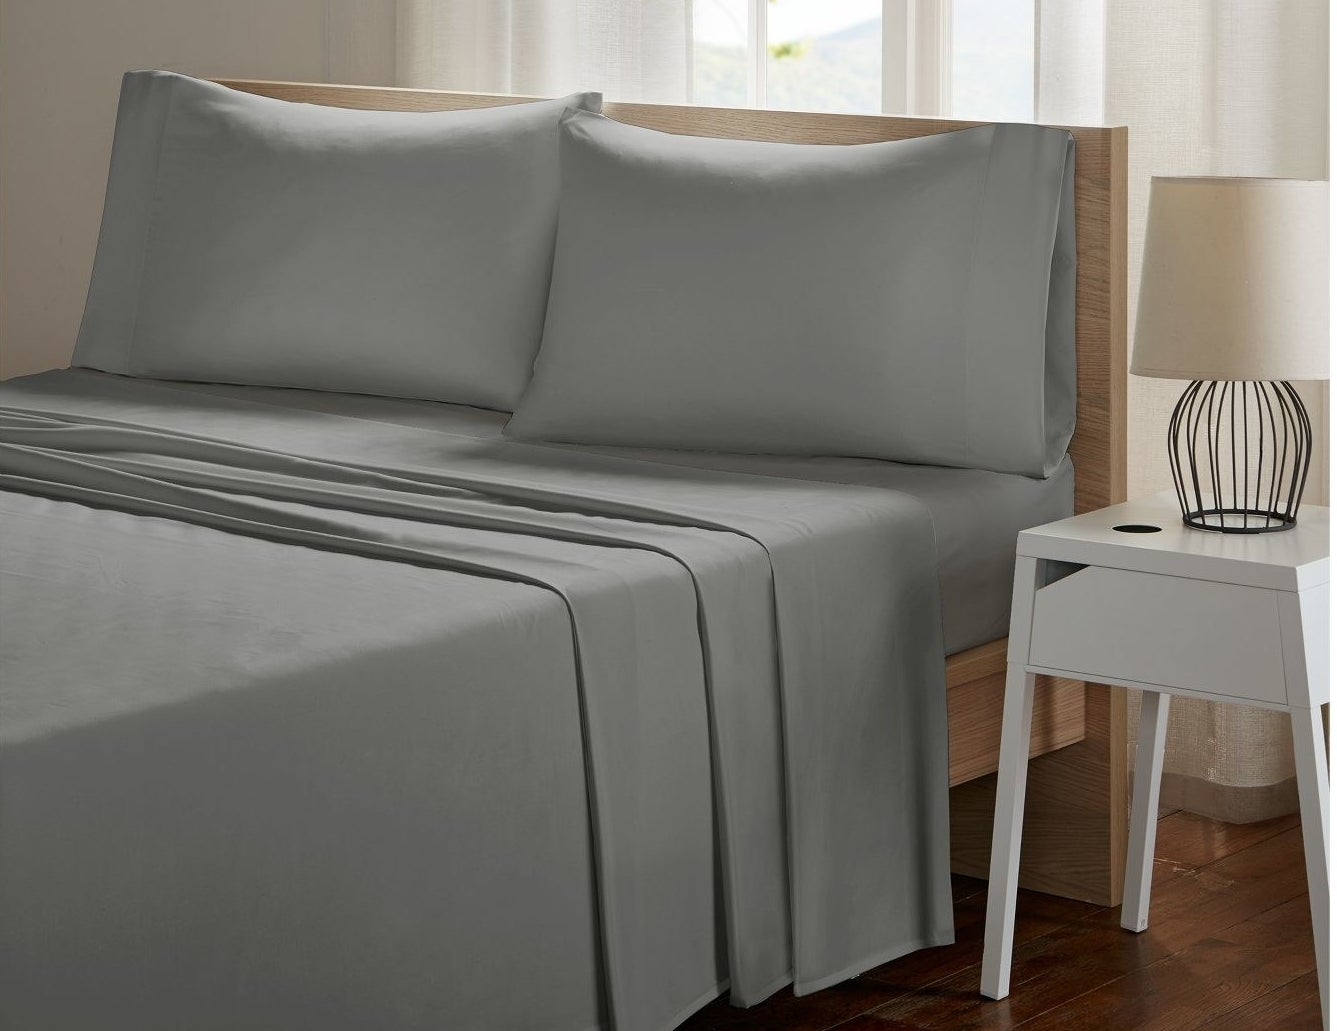 Light gray sheets and pillowcases properly displayed on a bed